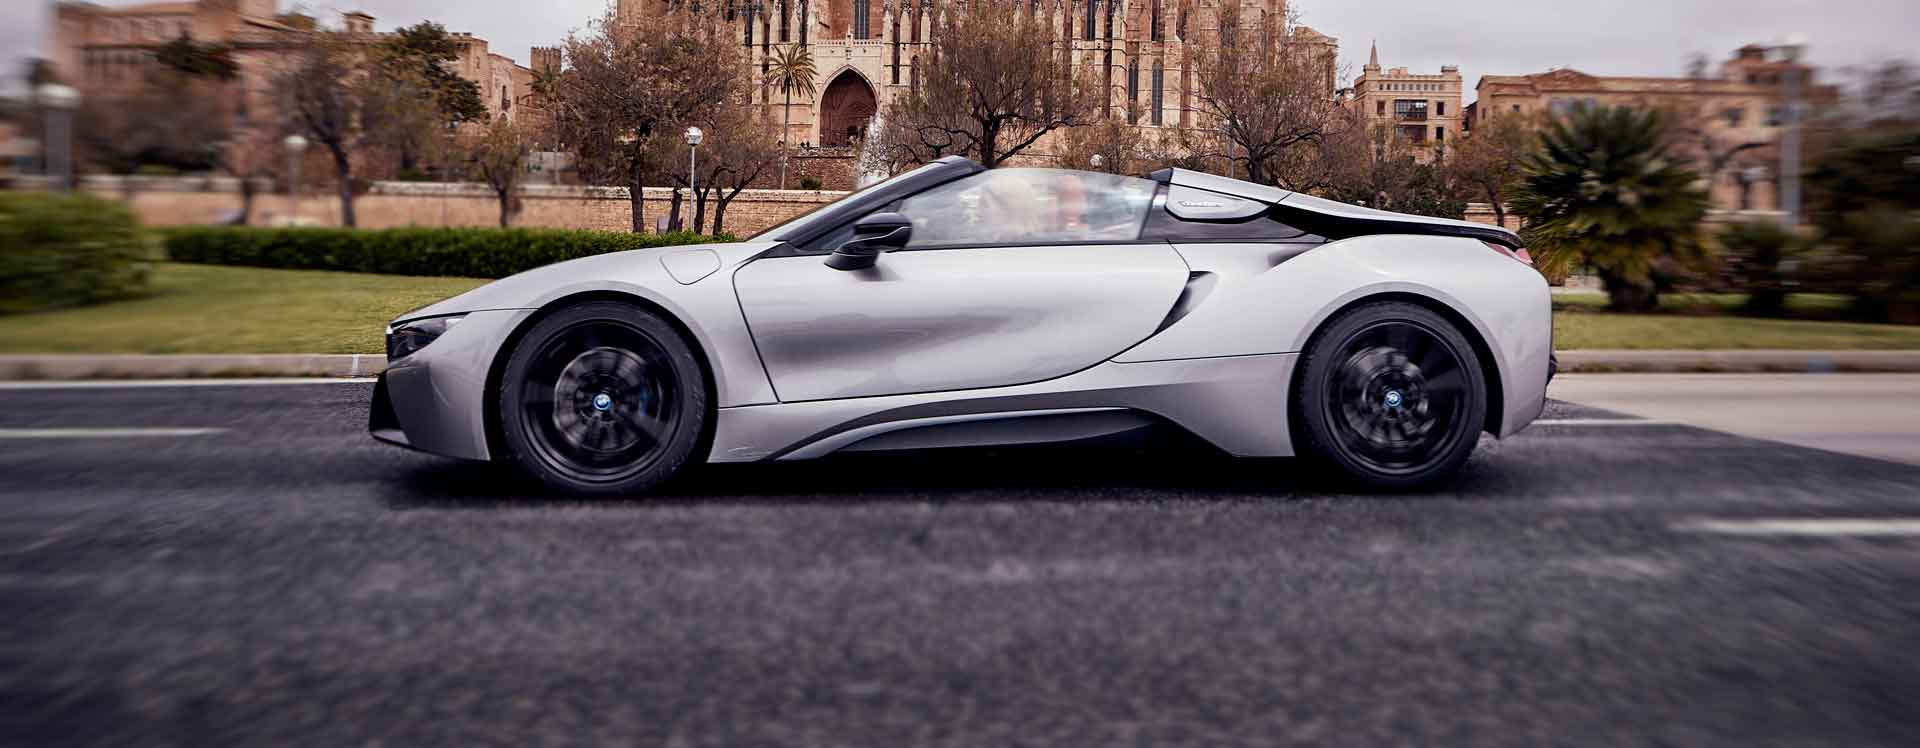 BMW i8 Convertible Roadster: Specs, Price, and Performance